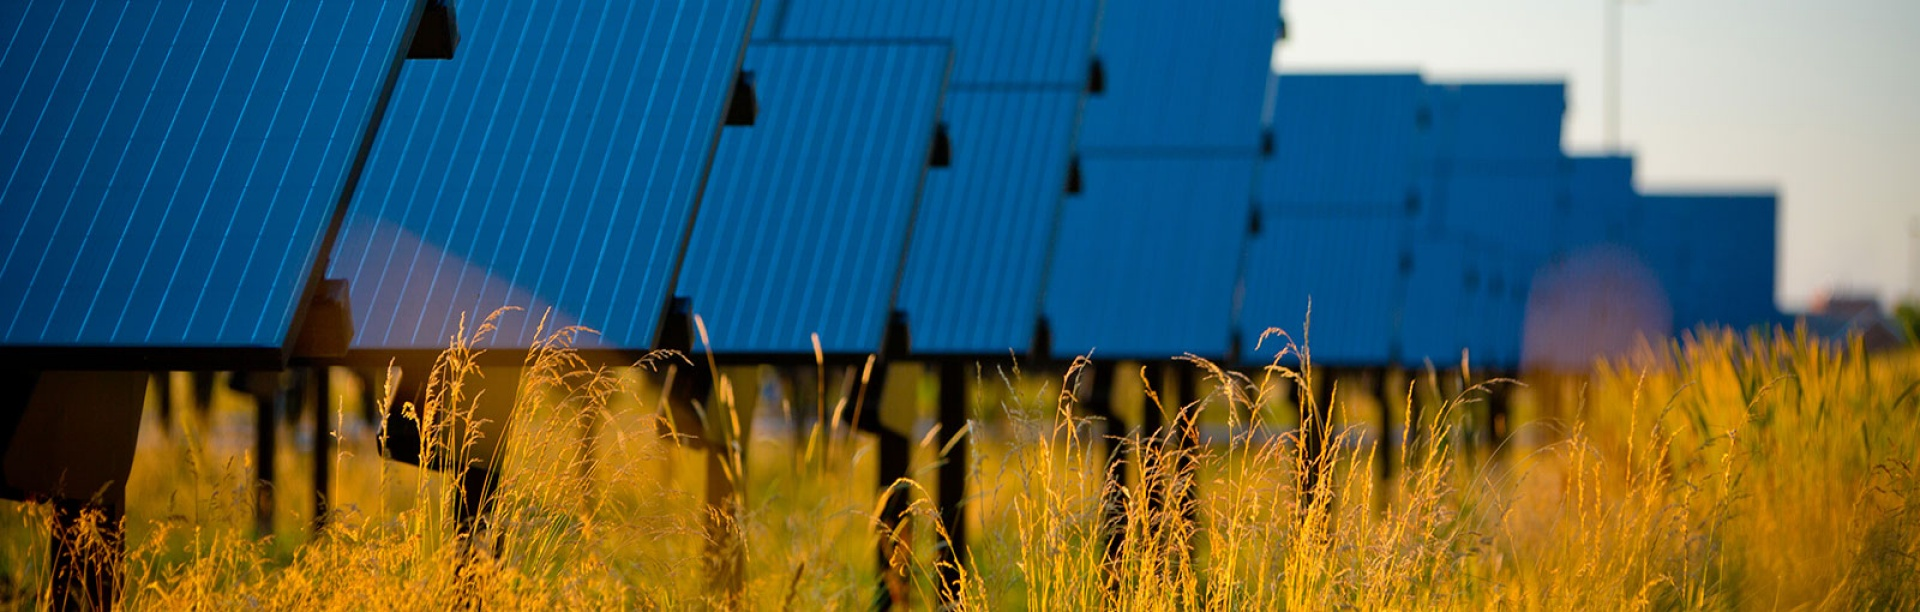 Photo of the Solar Strand panels with golden grasses highlighted in the foreground.